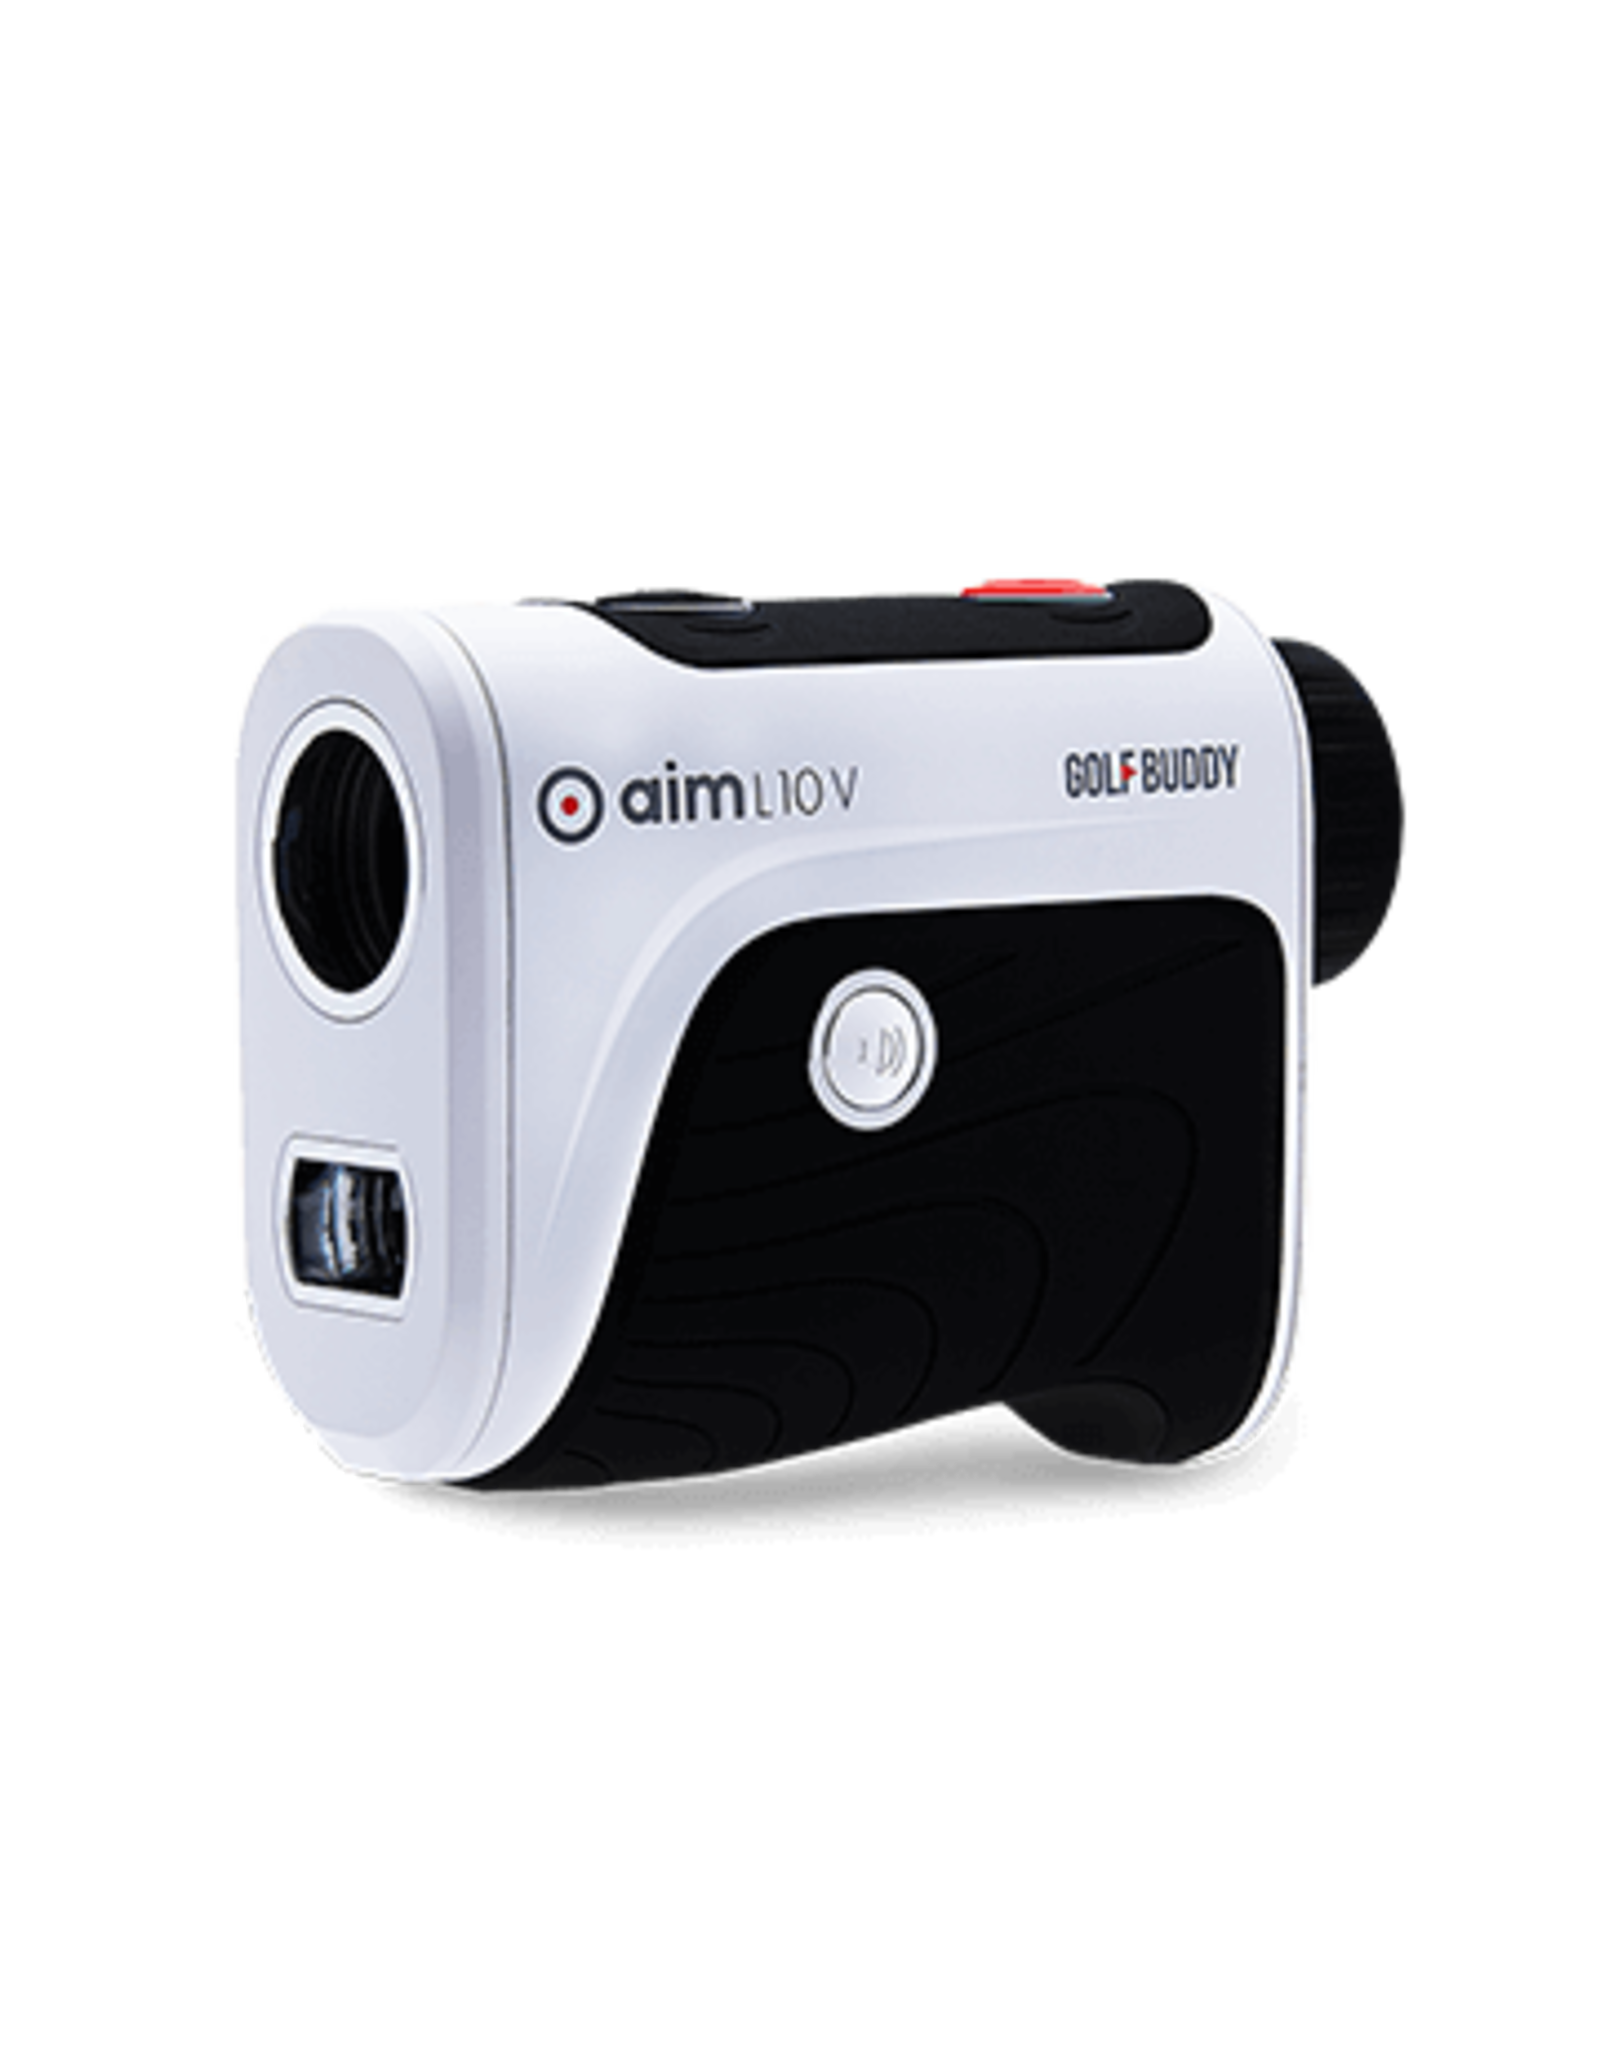 Golf Buddy Golf Buddy aim L10V Talking Rangefinder